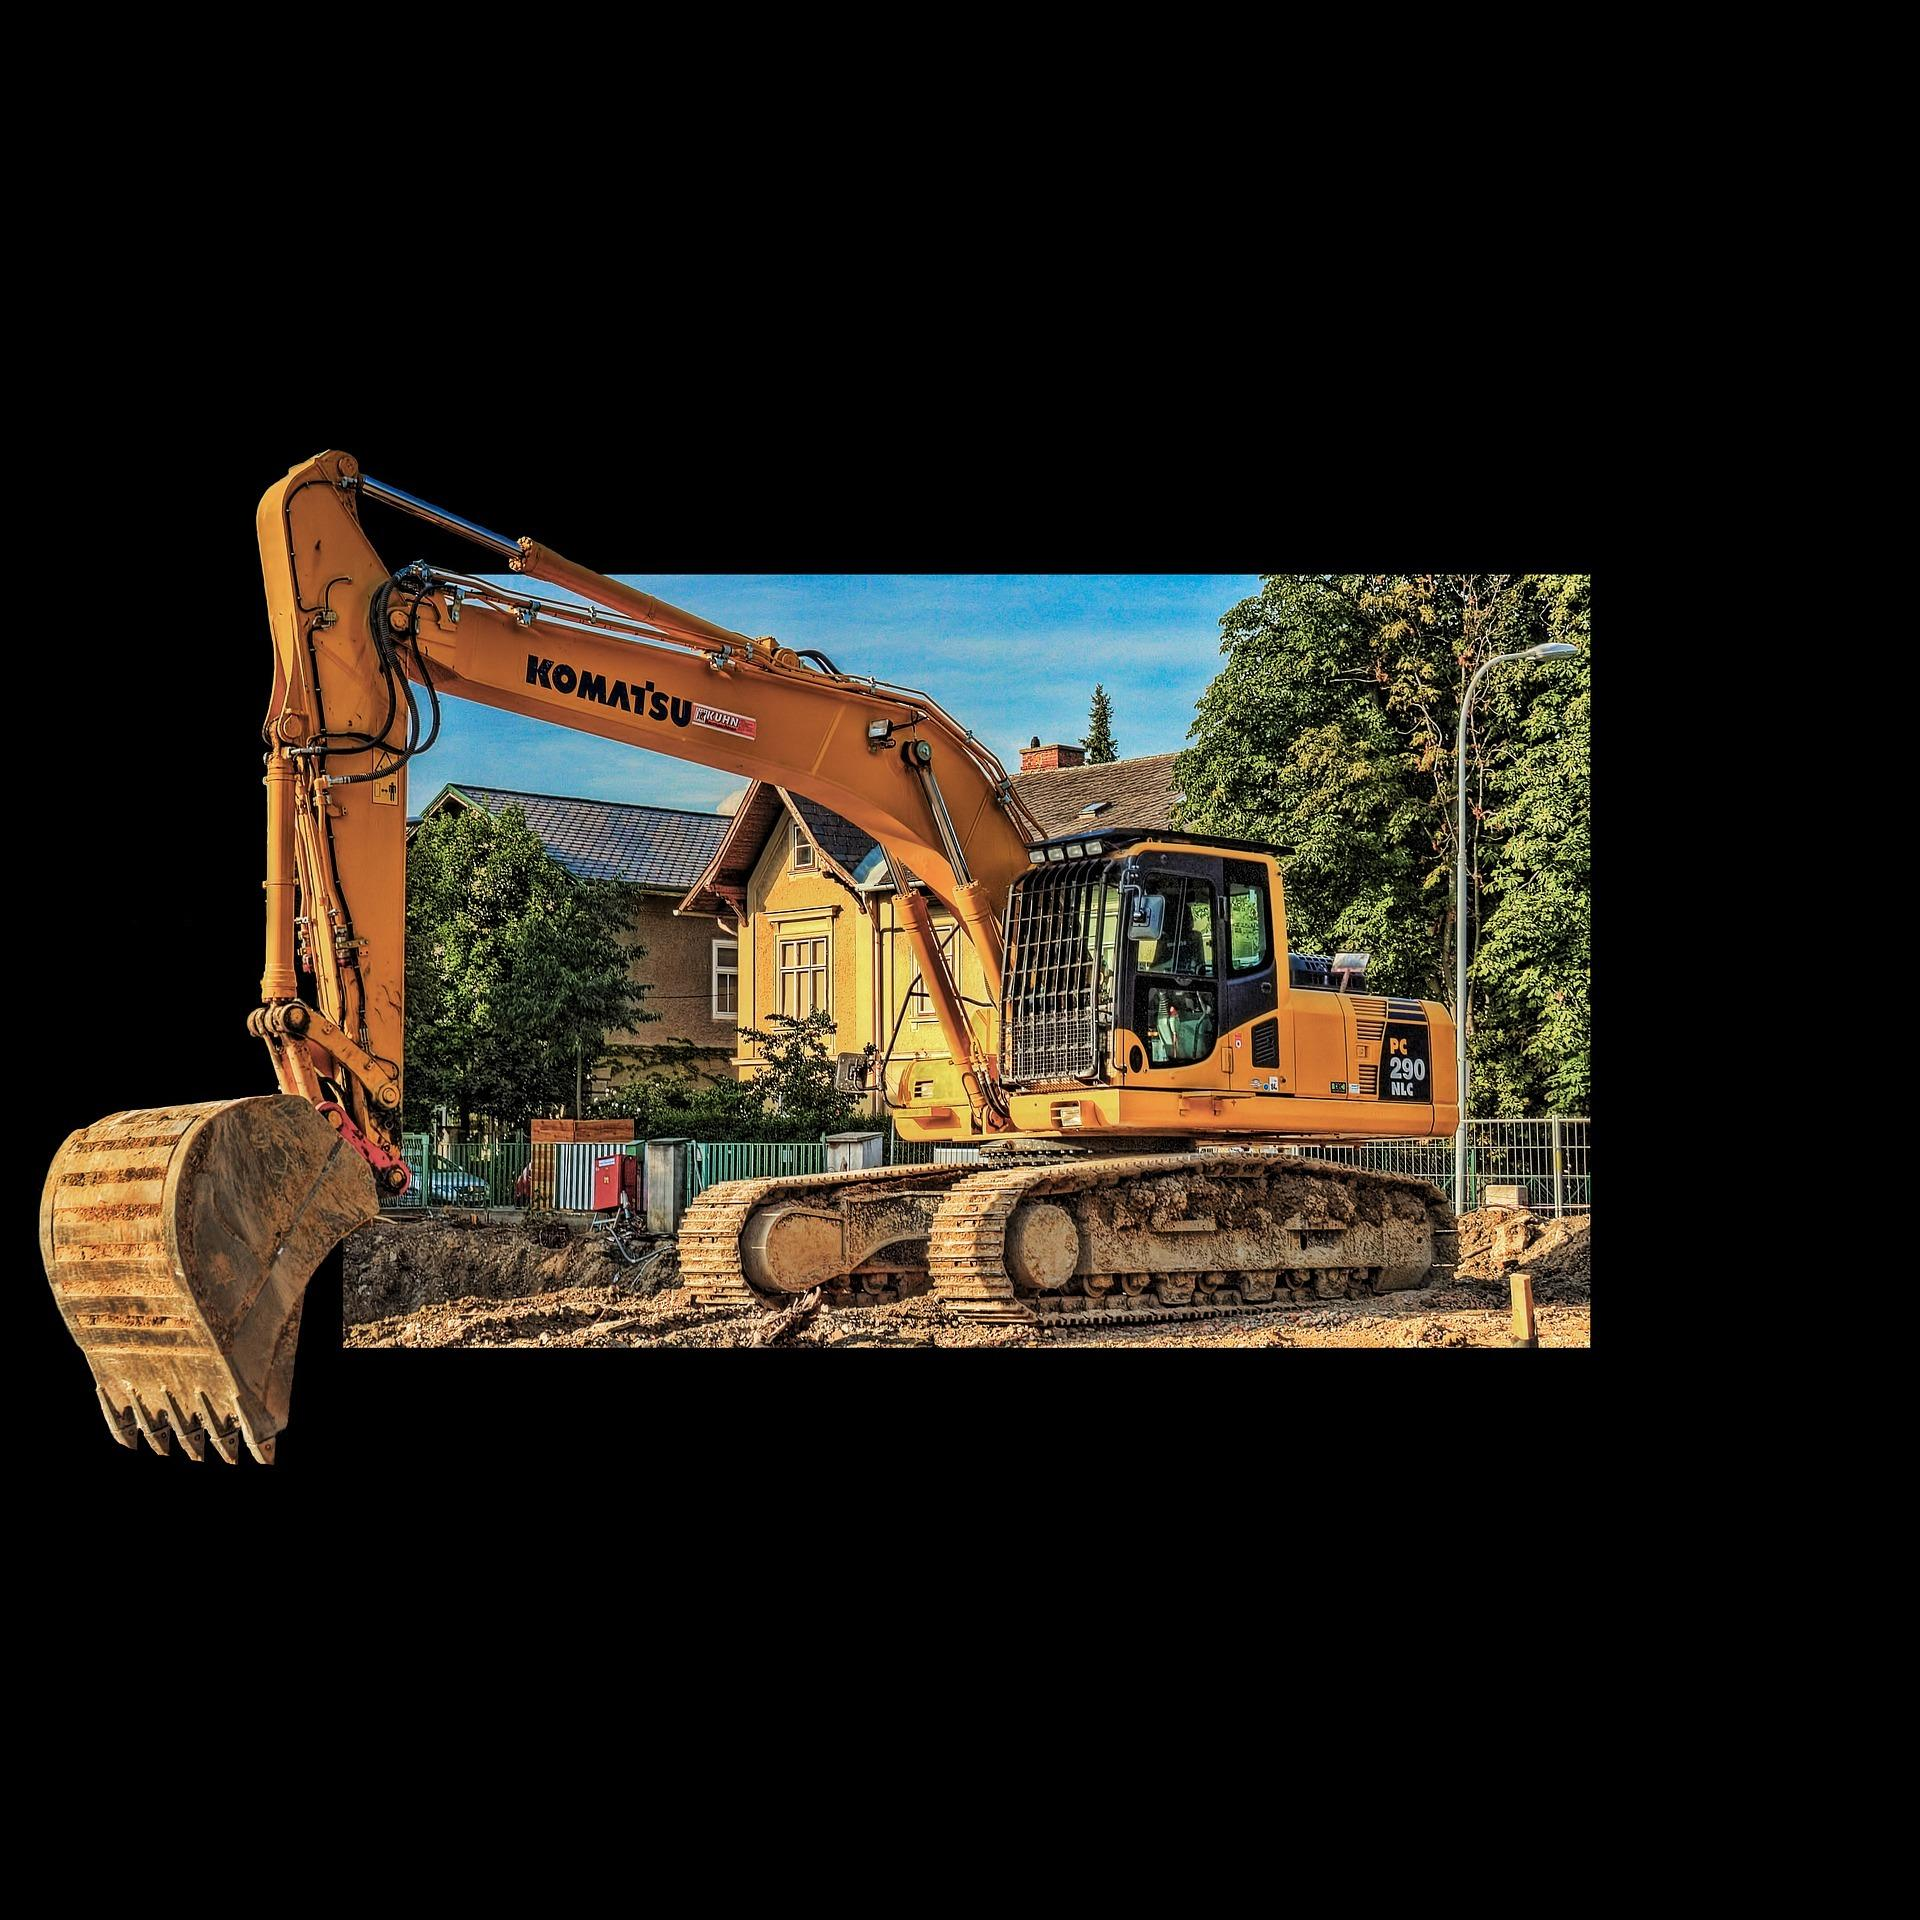 Ron Sharleville Excavation & Demolition a division of Redi Rubbish Removal Inc